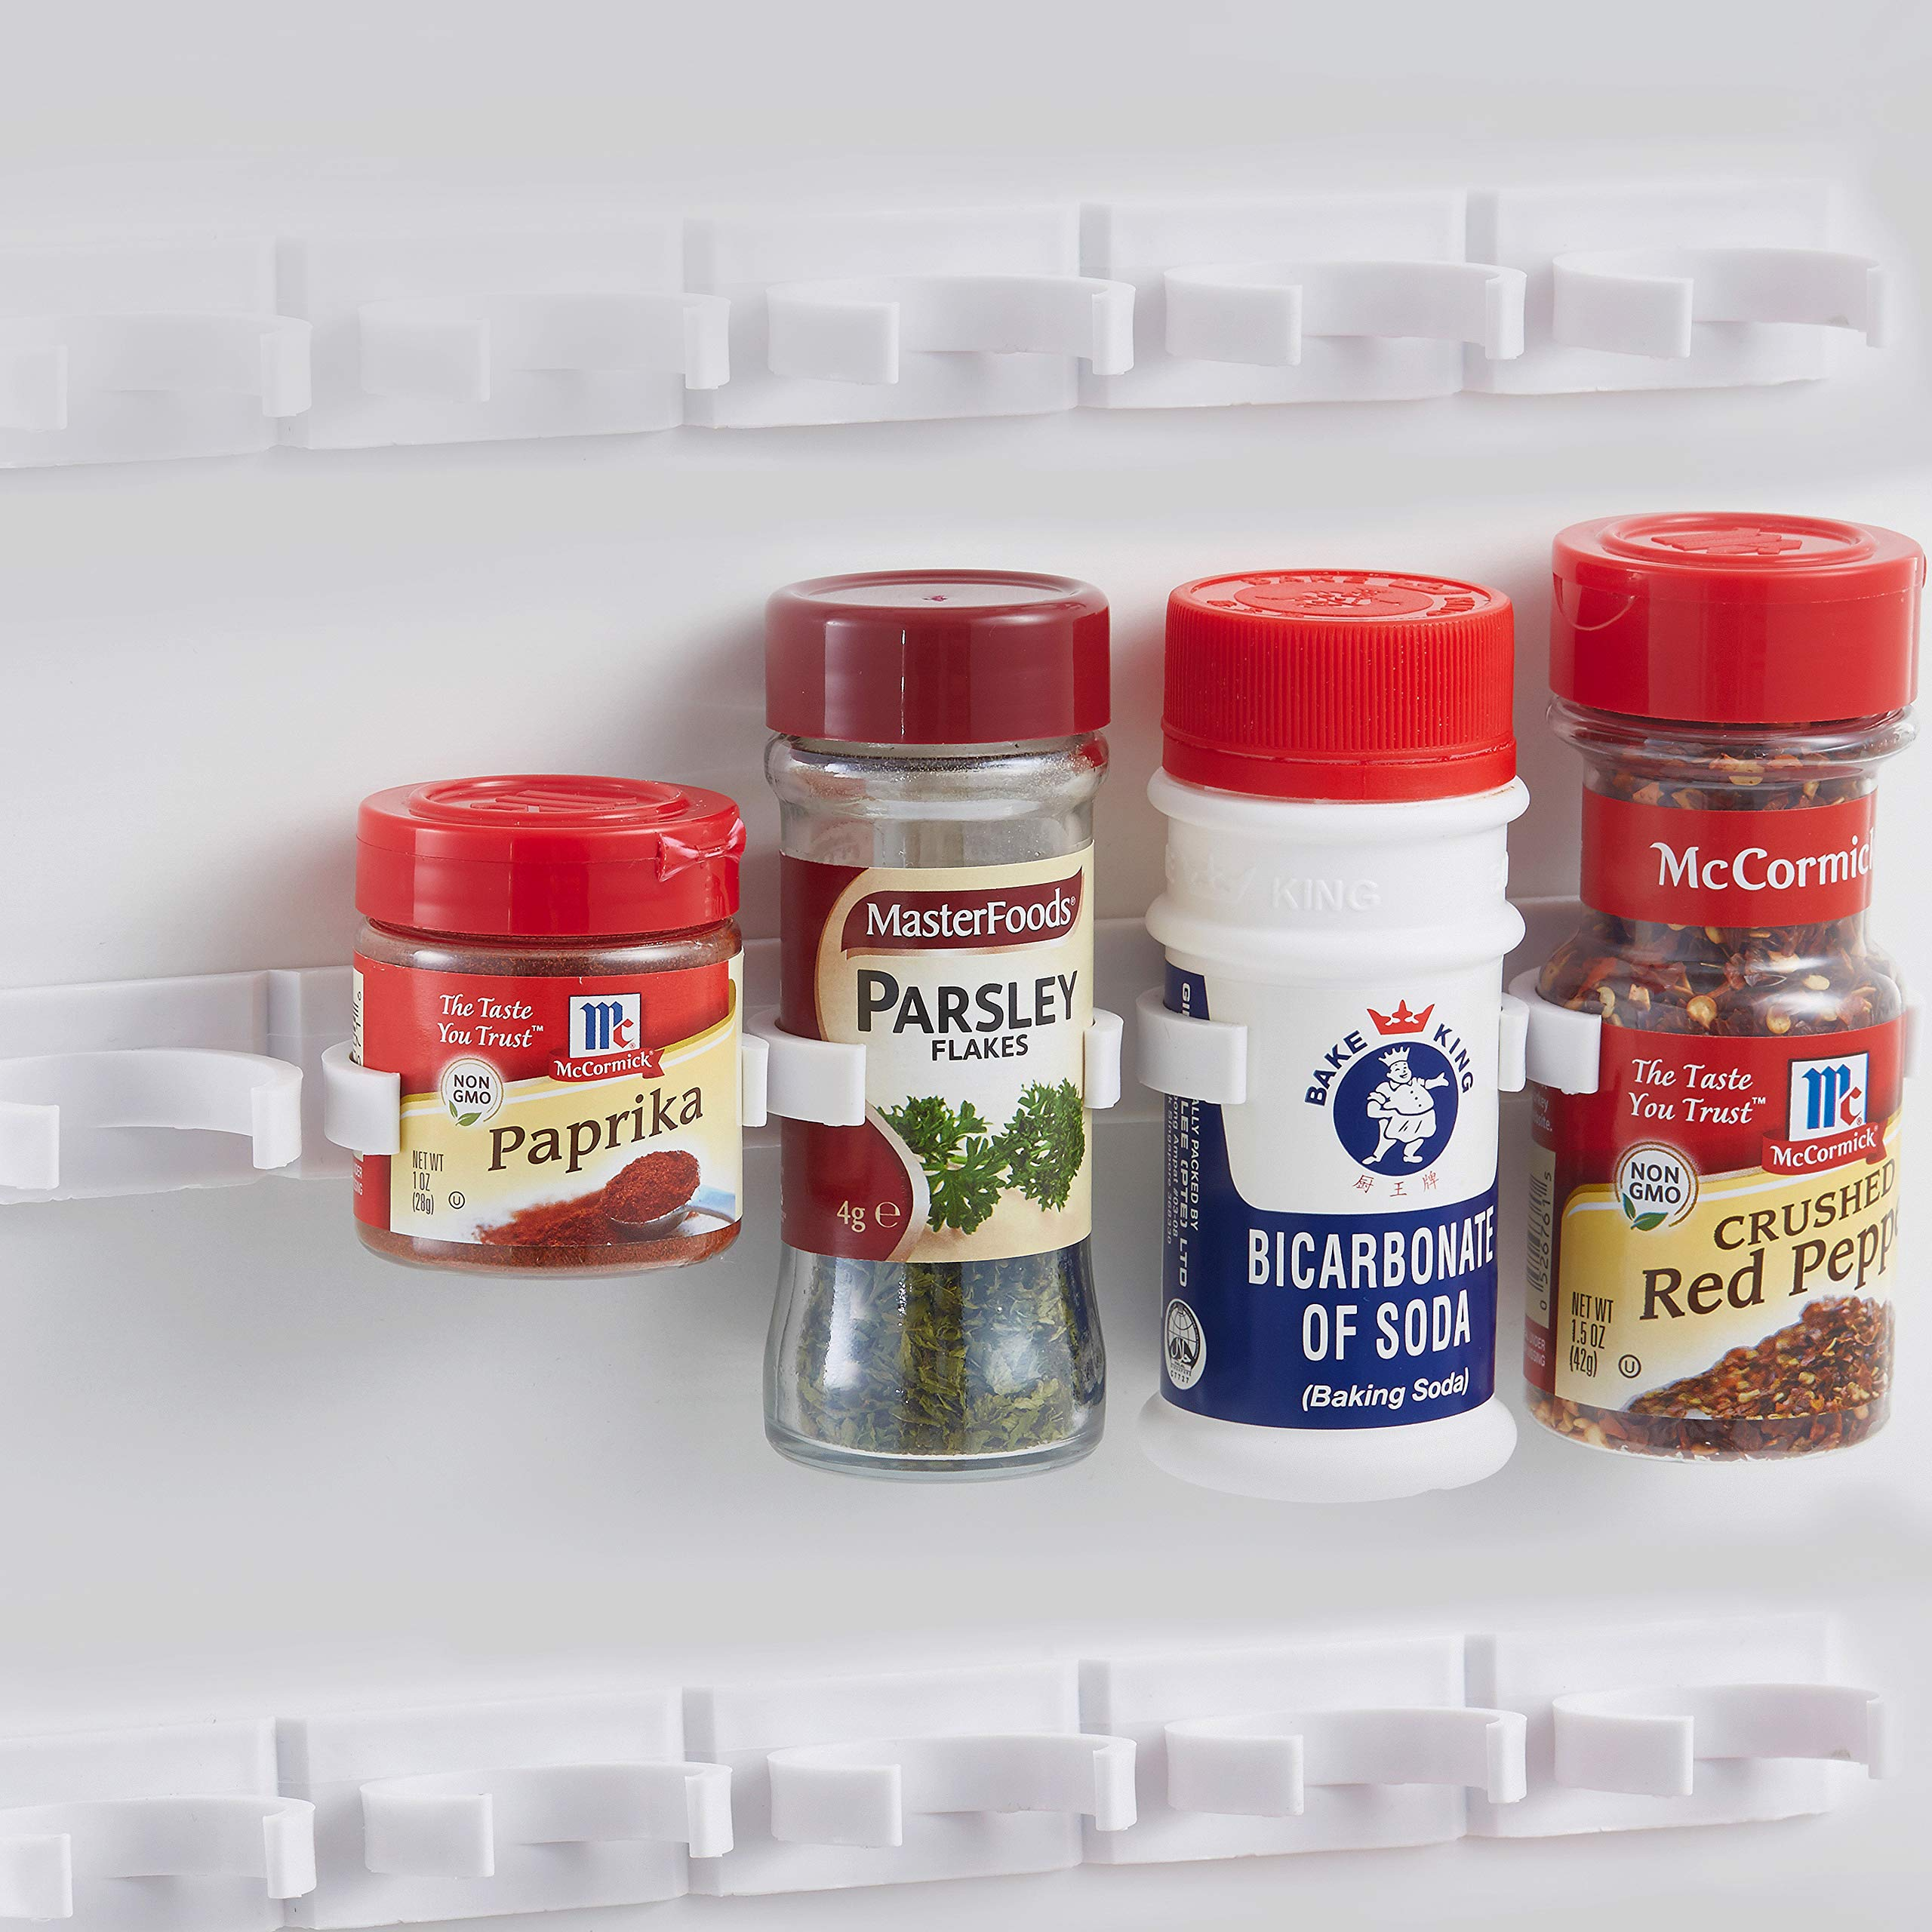 5 Pack, Extra Strength Adhesive Spice Clips- Bonus Stainless Steel Measuring Spoons - 5 Strips Holds 25 Glass/Plastic Herb and Spice Jars/Bottles. By Sunsella